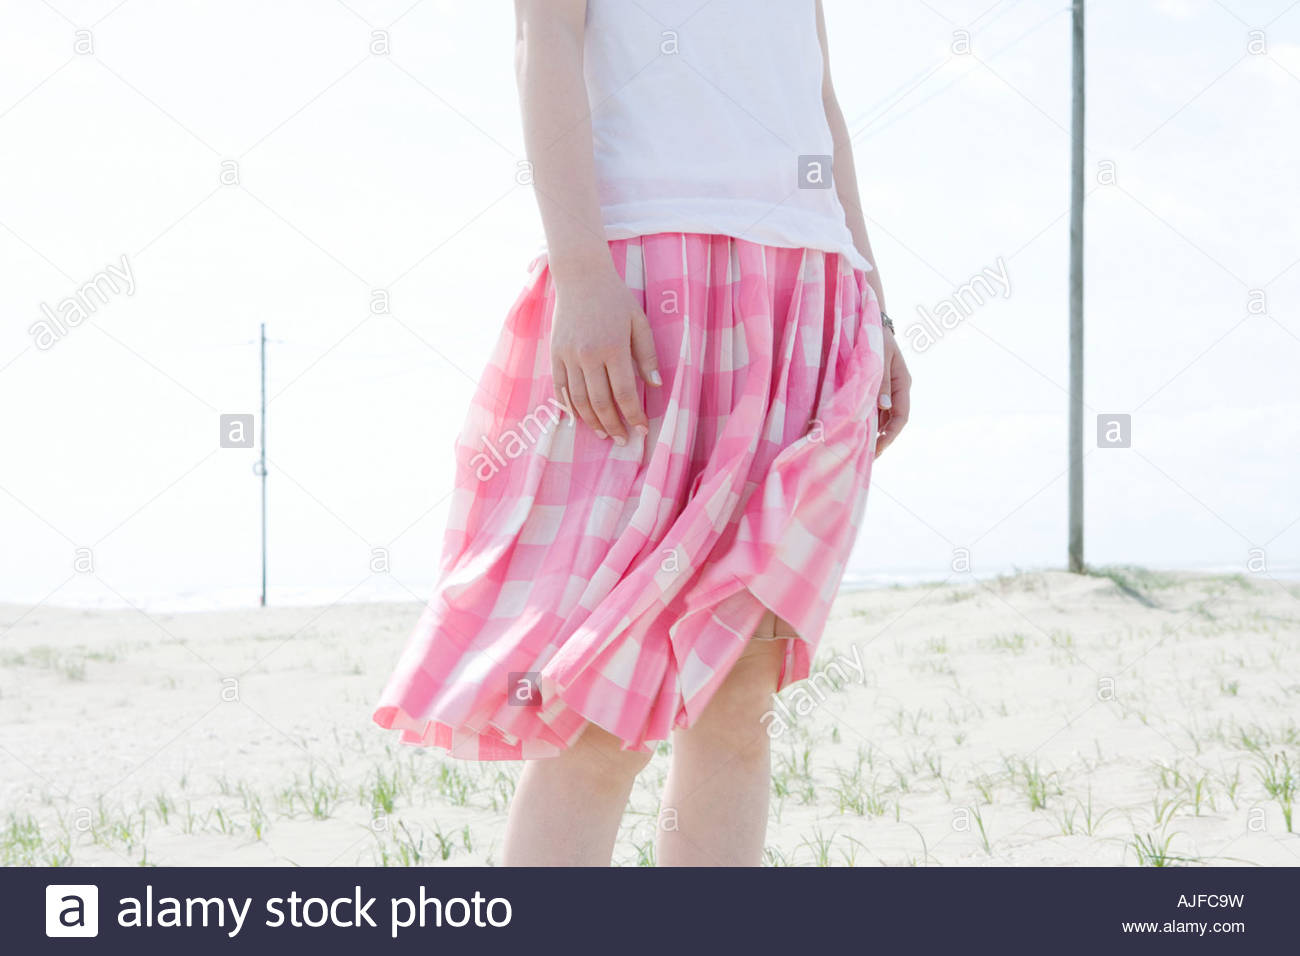 Woman with skirt blowing in breeze - Stock Image